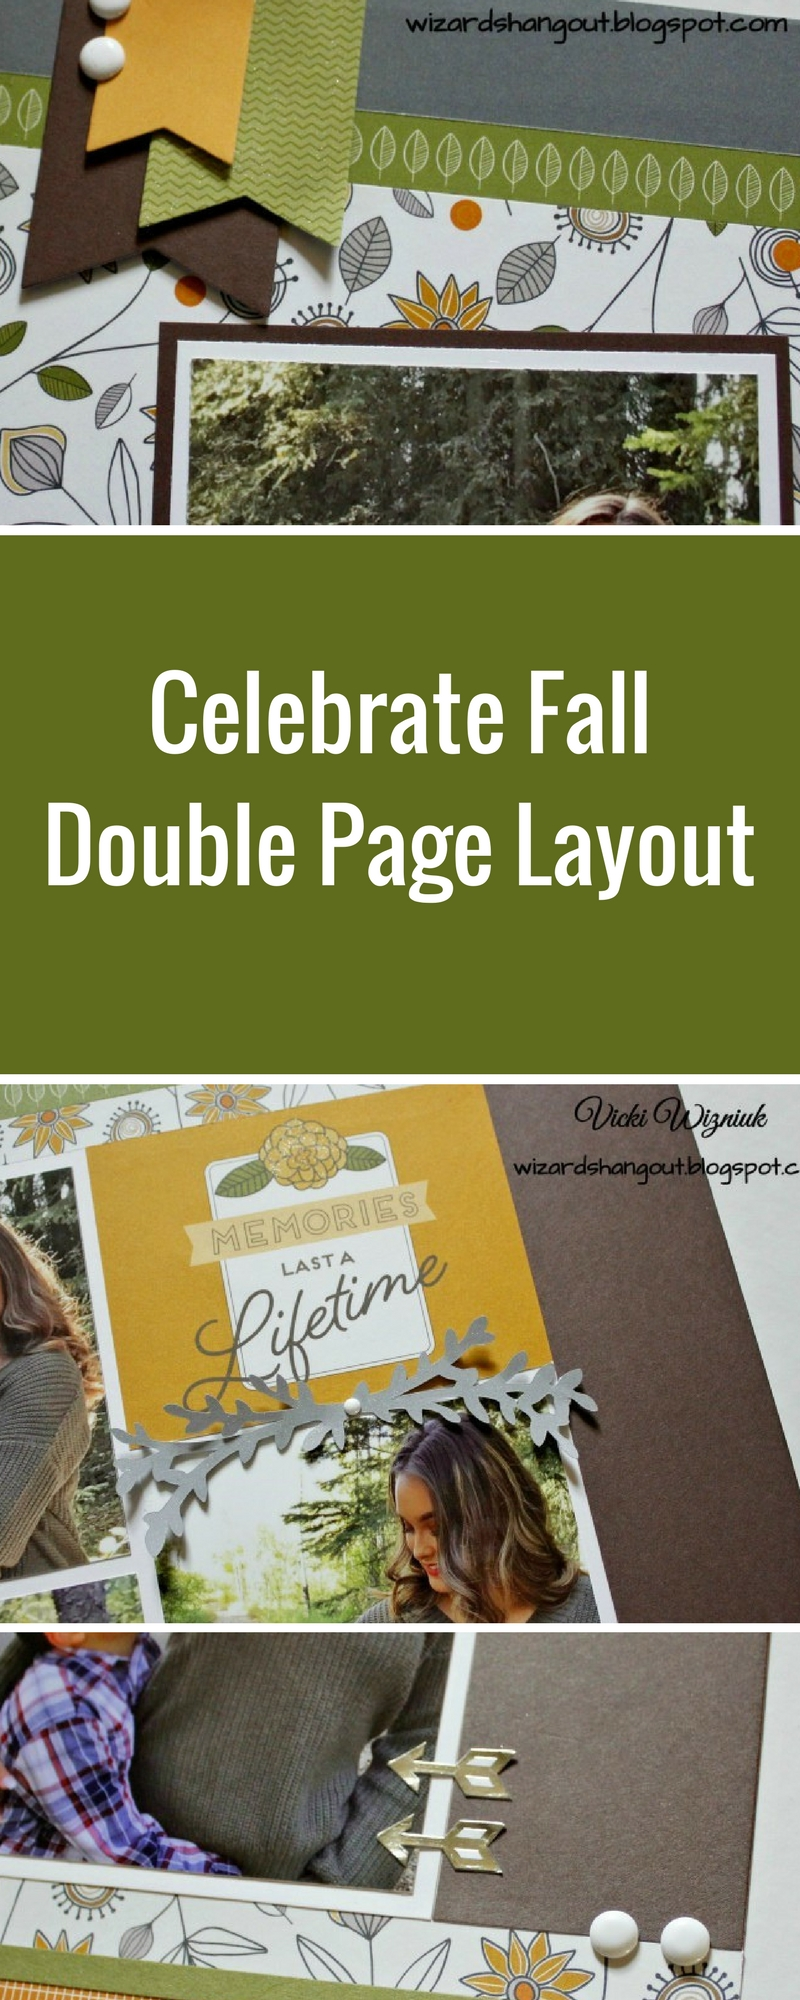 Close To My Heart Double Page Layout designed by Vicki Wizniuk | Creative Scrapbooker Magazine #doublepage #scrapbooking #fall